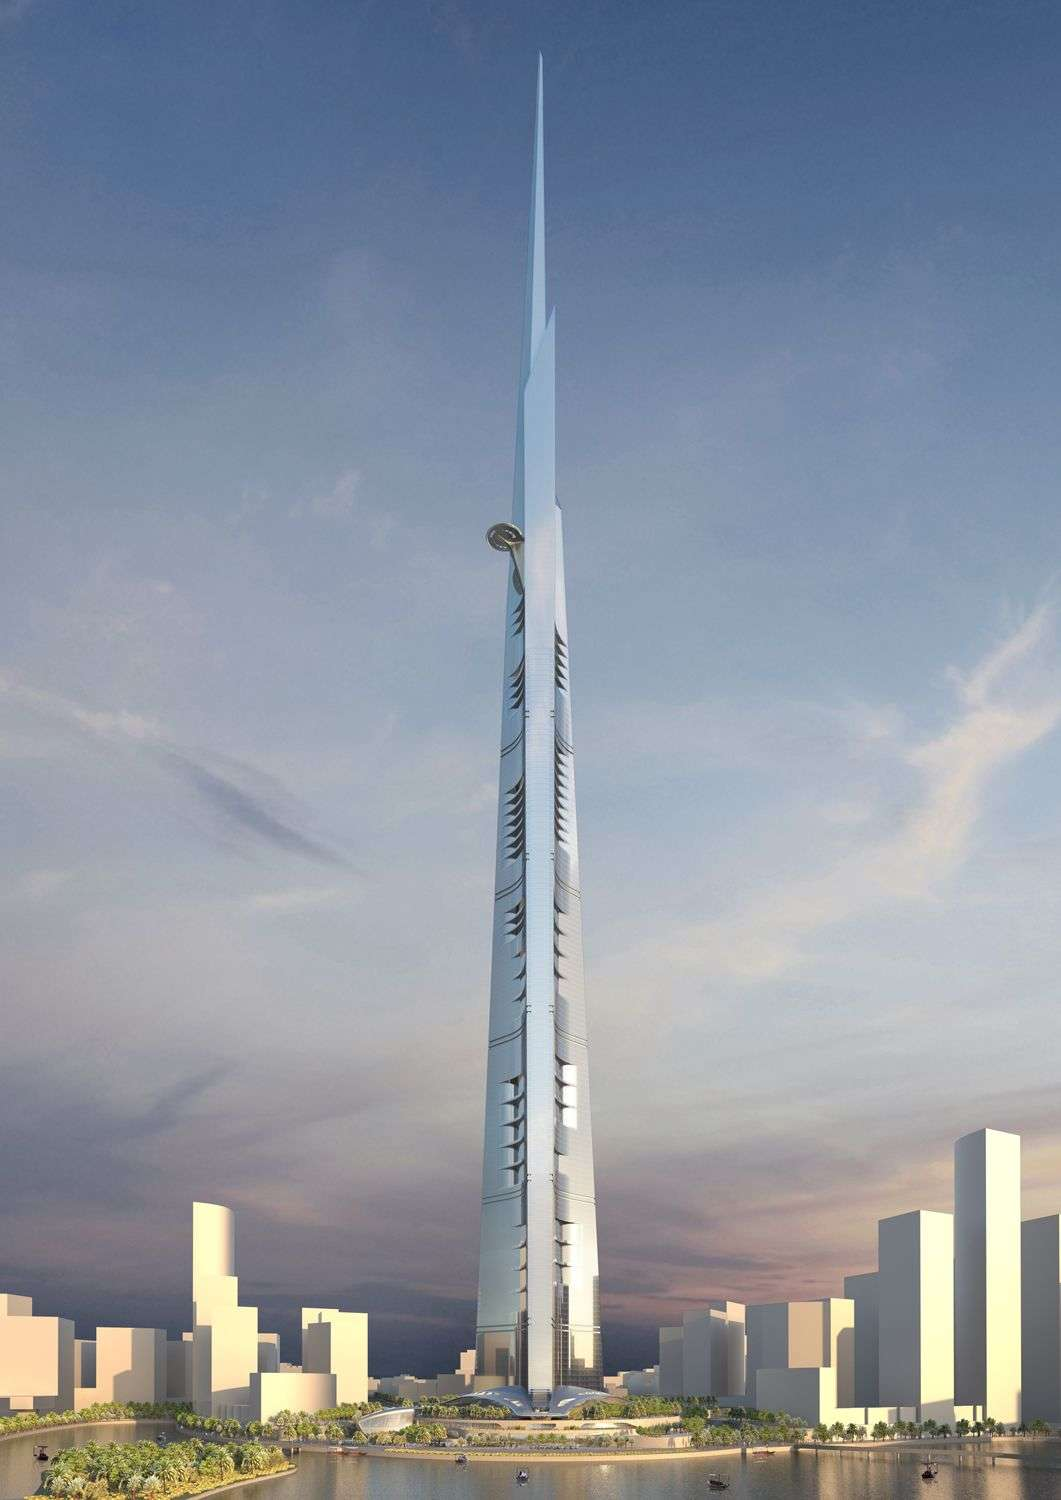 The Jeddah Tower will jut 1,000 metres into the sky, 72 metres higher than the current tallest structure on earth, the Burj Khalifa. Image credit: AS+GG